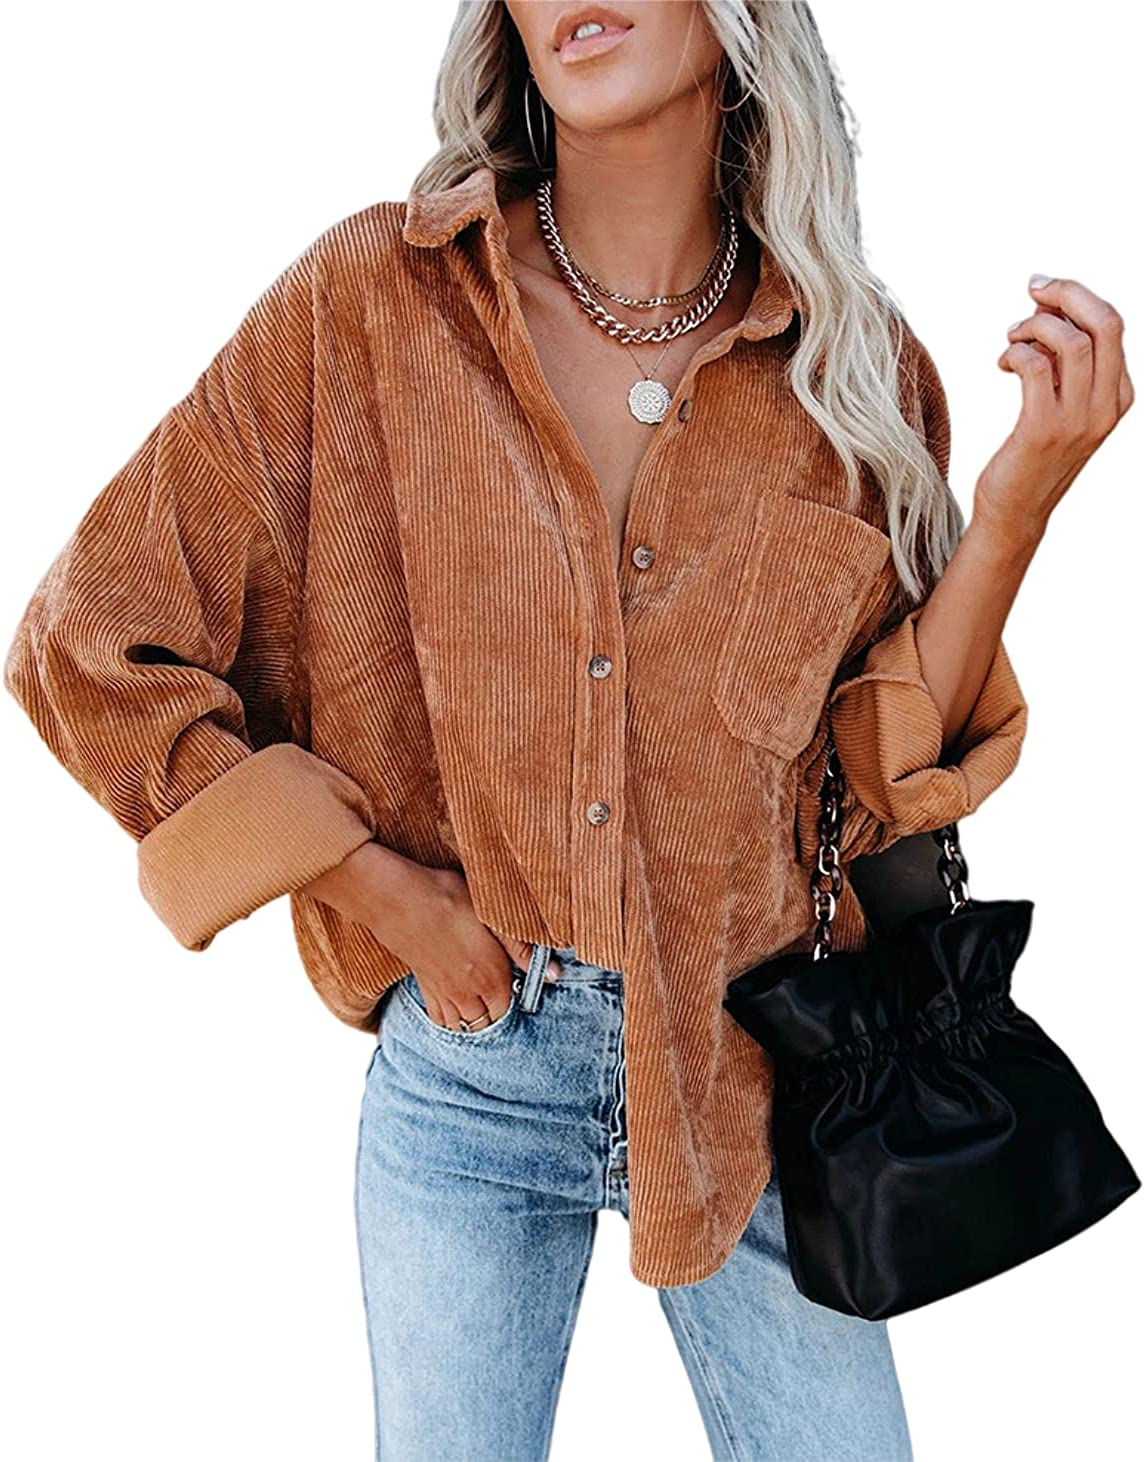 Melliflo Womens Corduroy Jacket Button Down Shirts Oversized Causal Long Sleeve Blouses Tops with Pockets